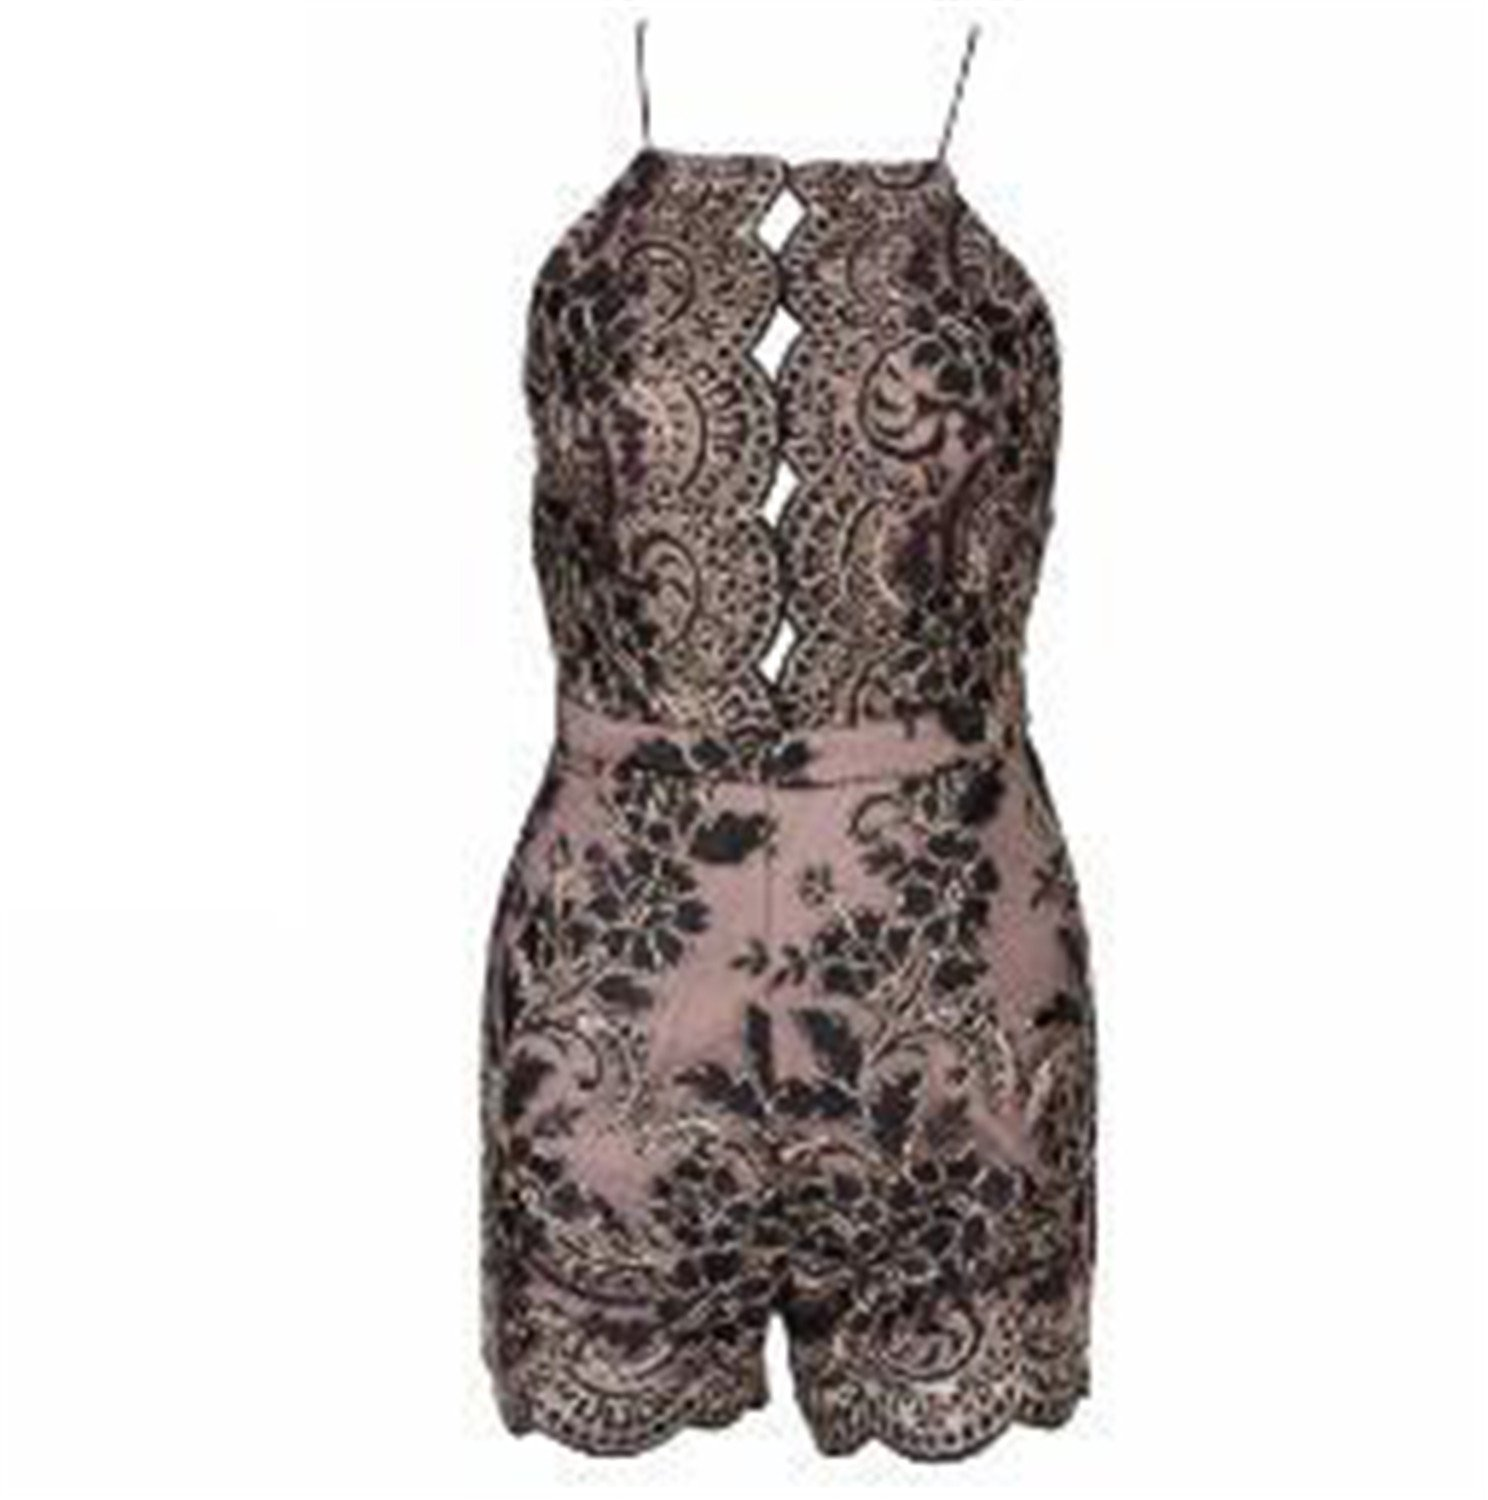 Ygosoon Lace Halter Playsuit Gold/Black/red TB 10008 Black L